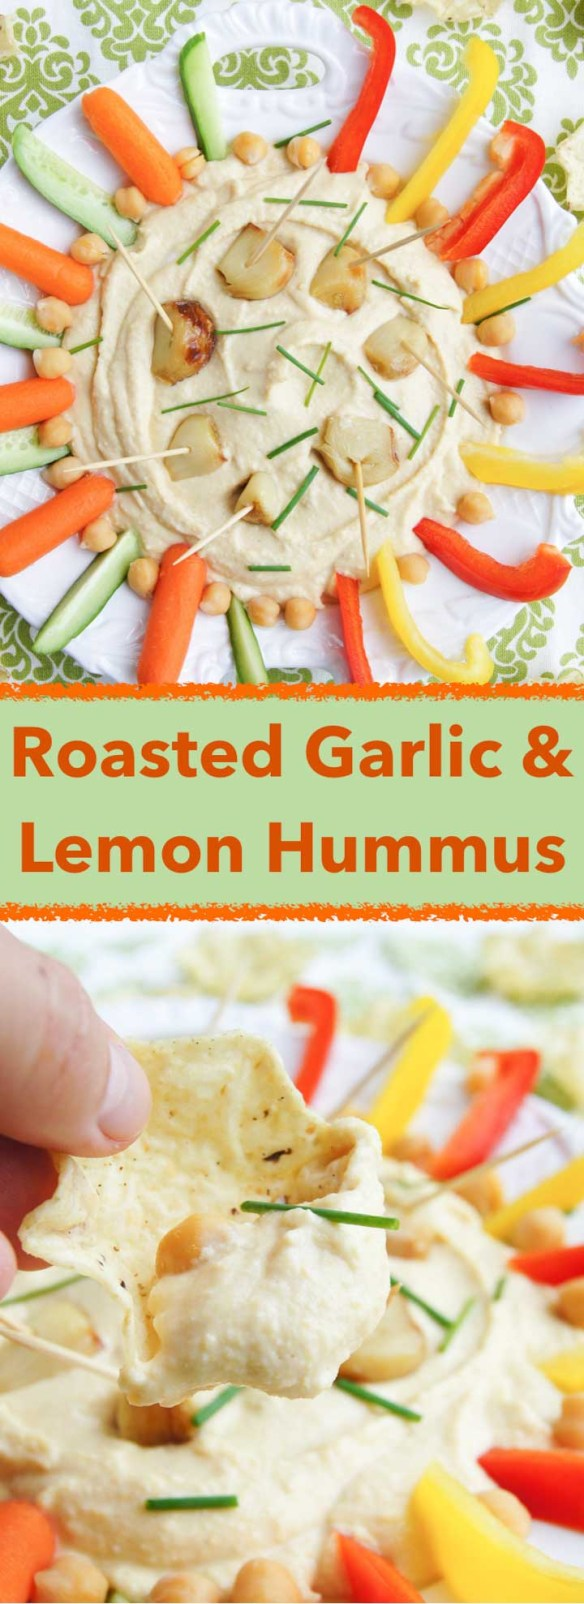 Roasted Garlic and Lemon Hummus - real treat for garlic lovers; roasted garlic, lemon, nutty notes balanced perfectly in easy, 6min recipe.